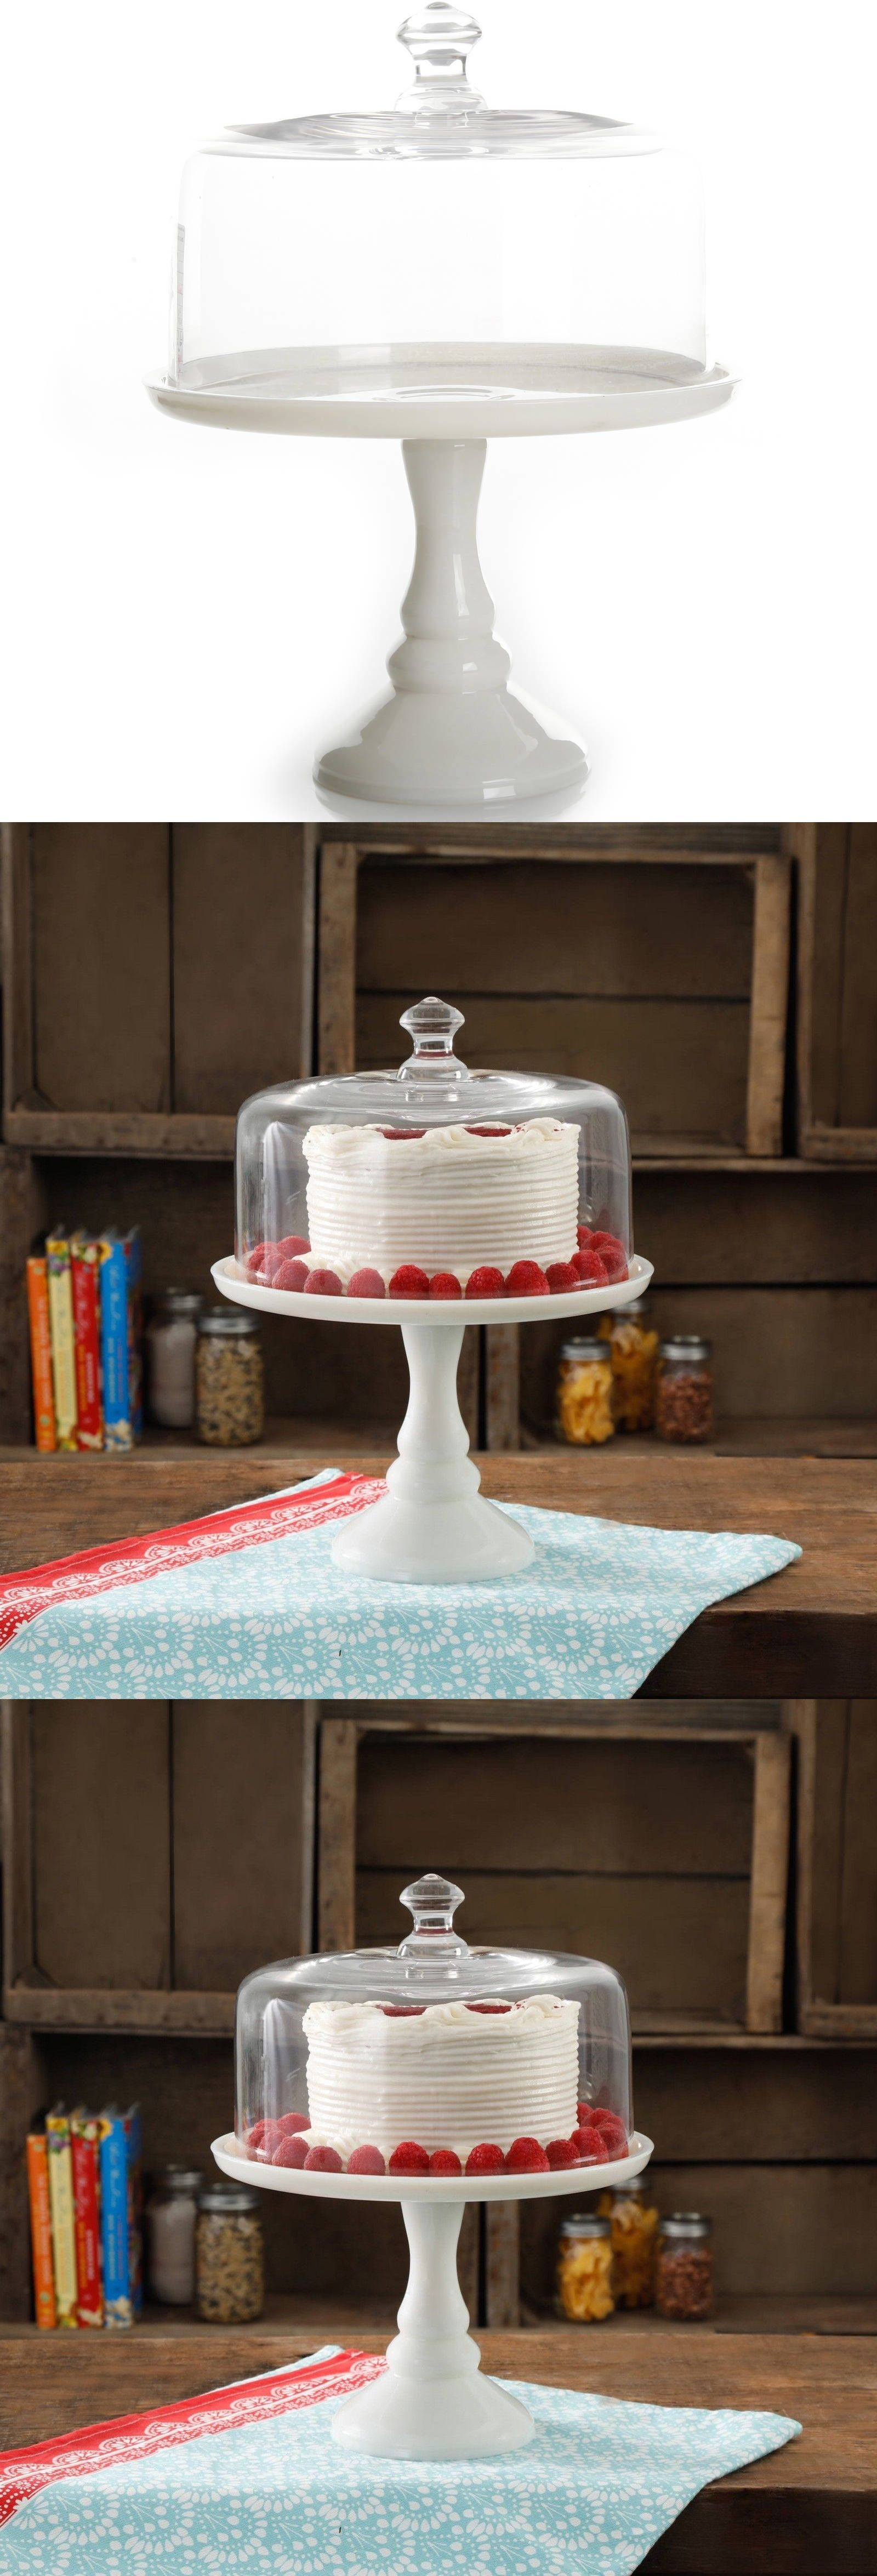 Cake stands 177010 the pioneer woman timeless beauty 10